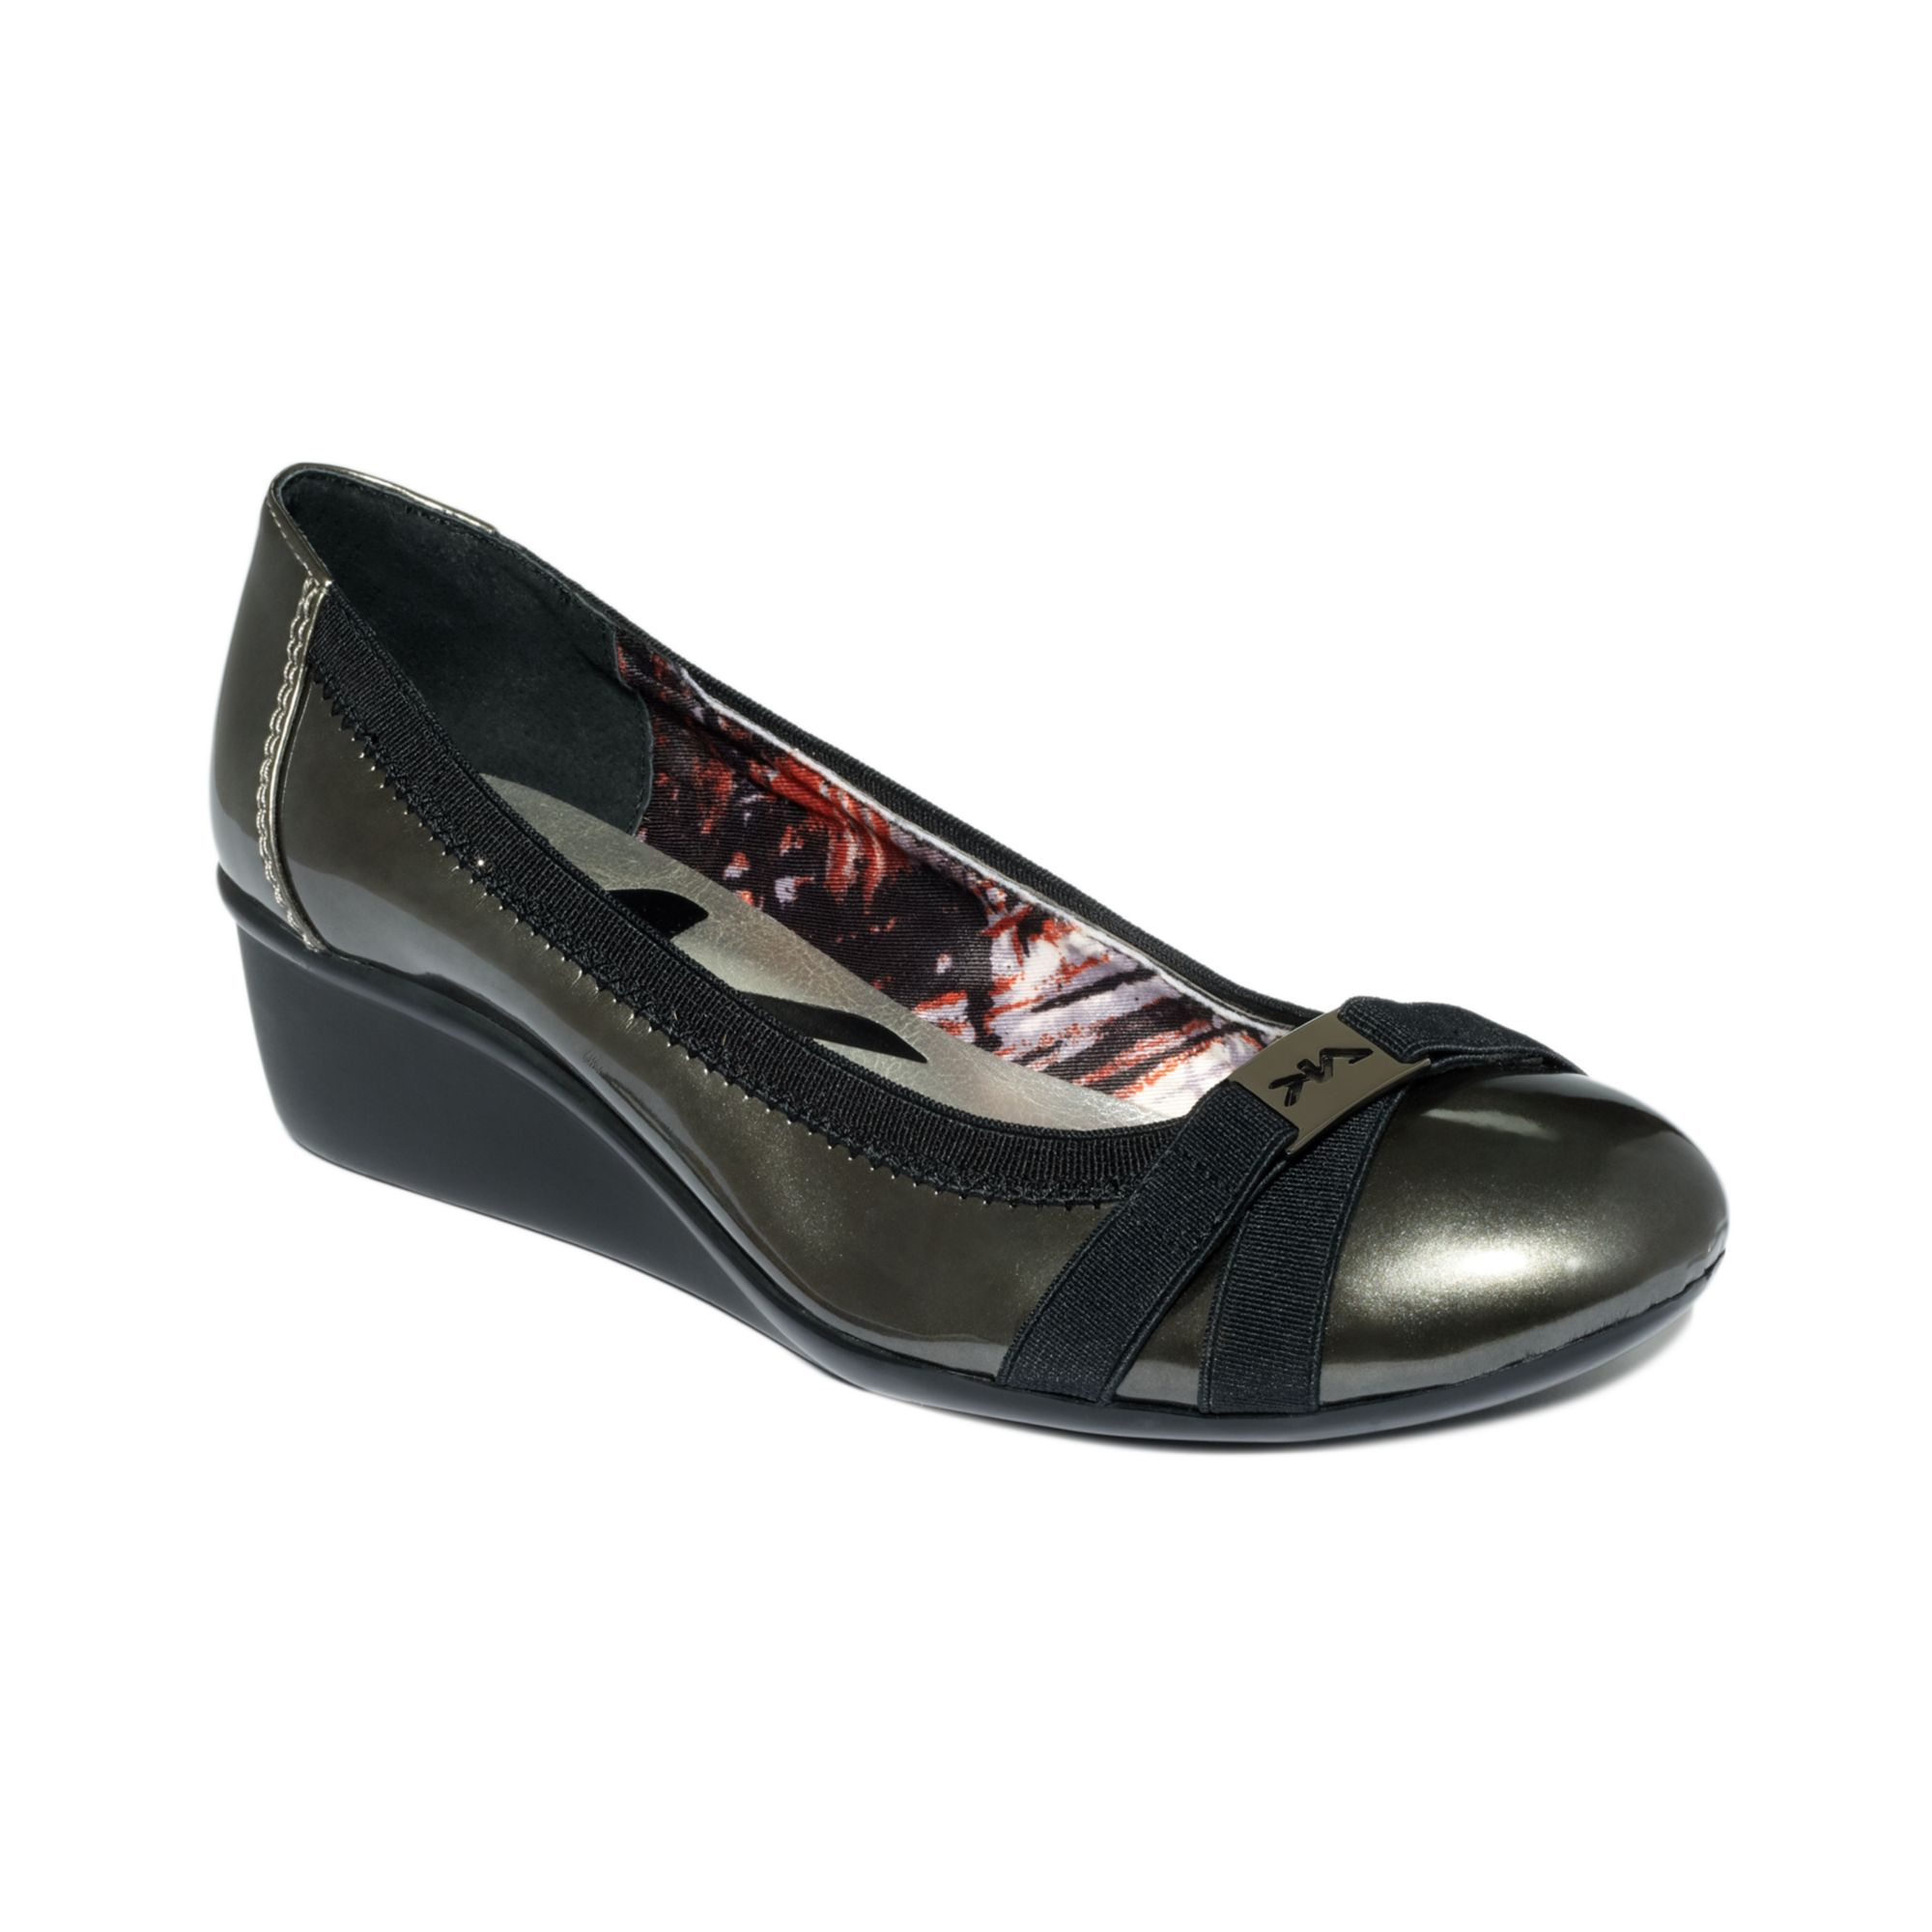 ae817c3e2f70 Lyst - Anne Klein Sport Definitely Wedge Pumps in Metallic